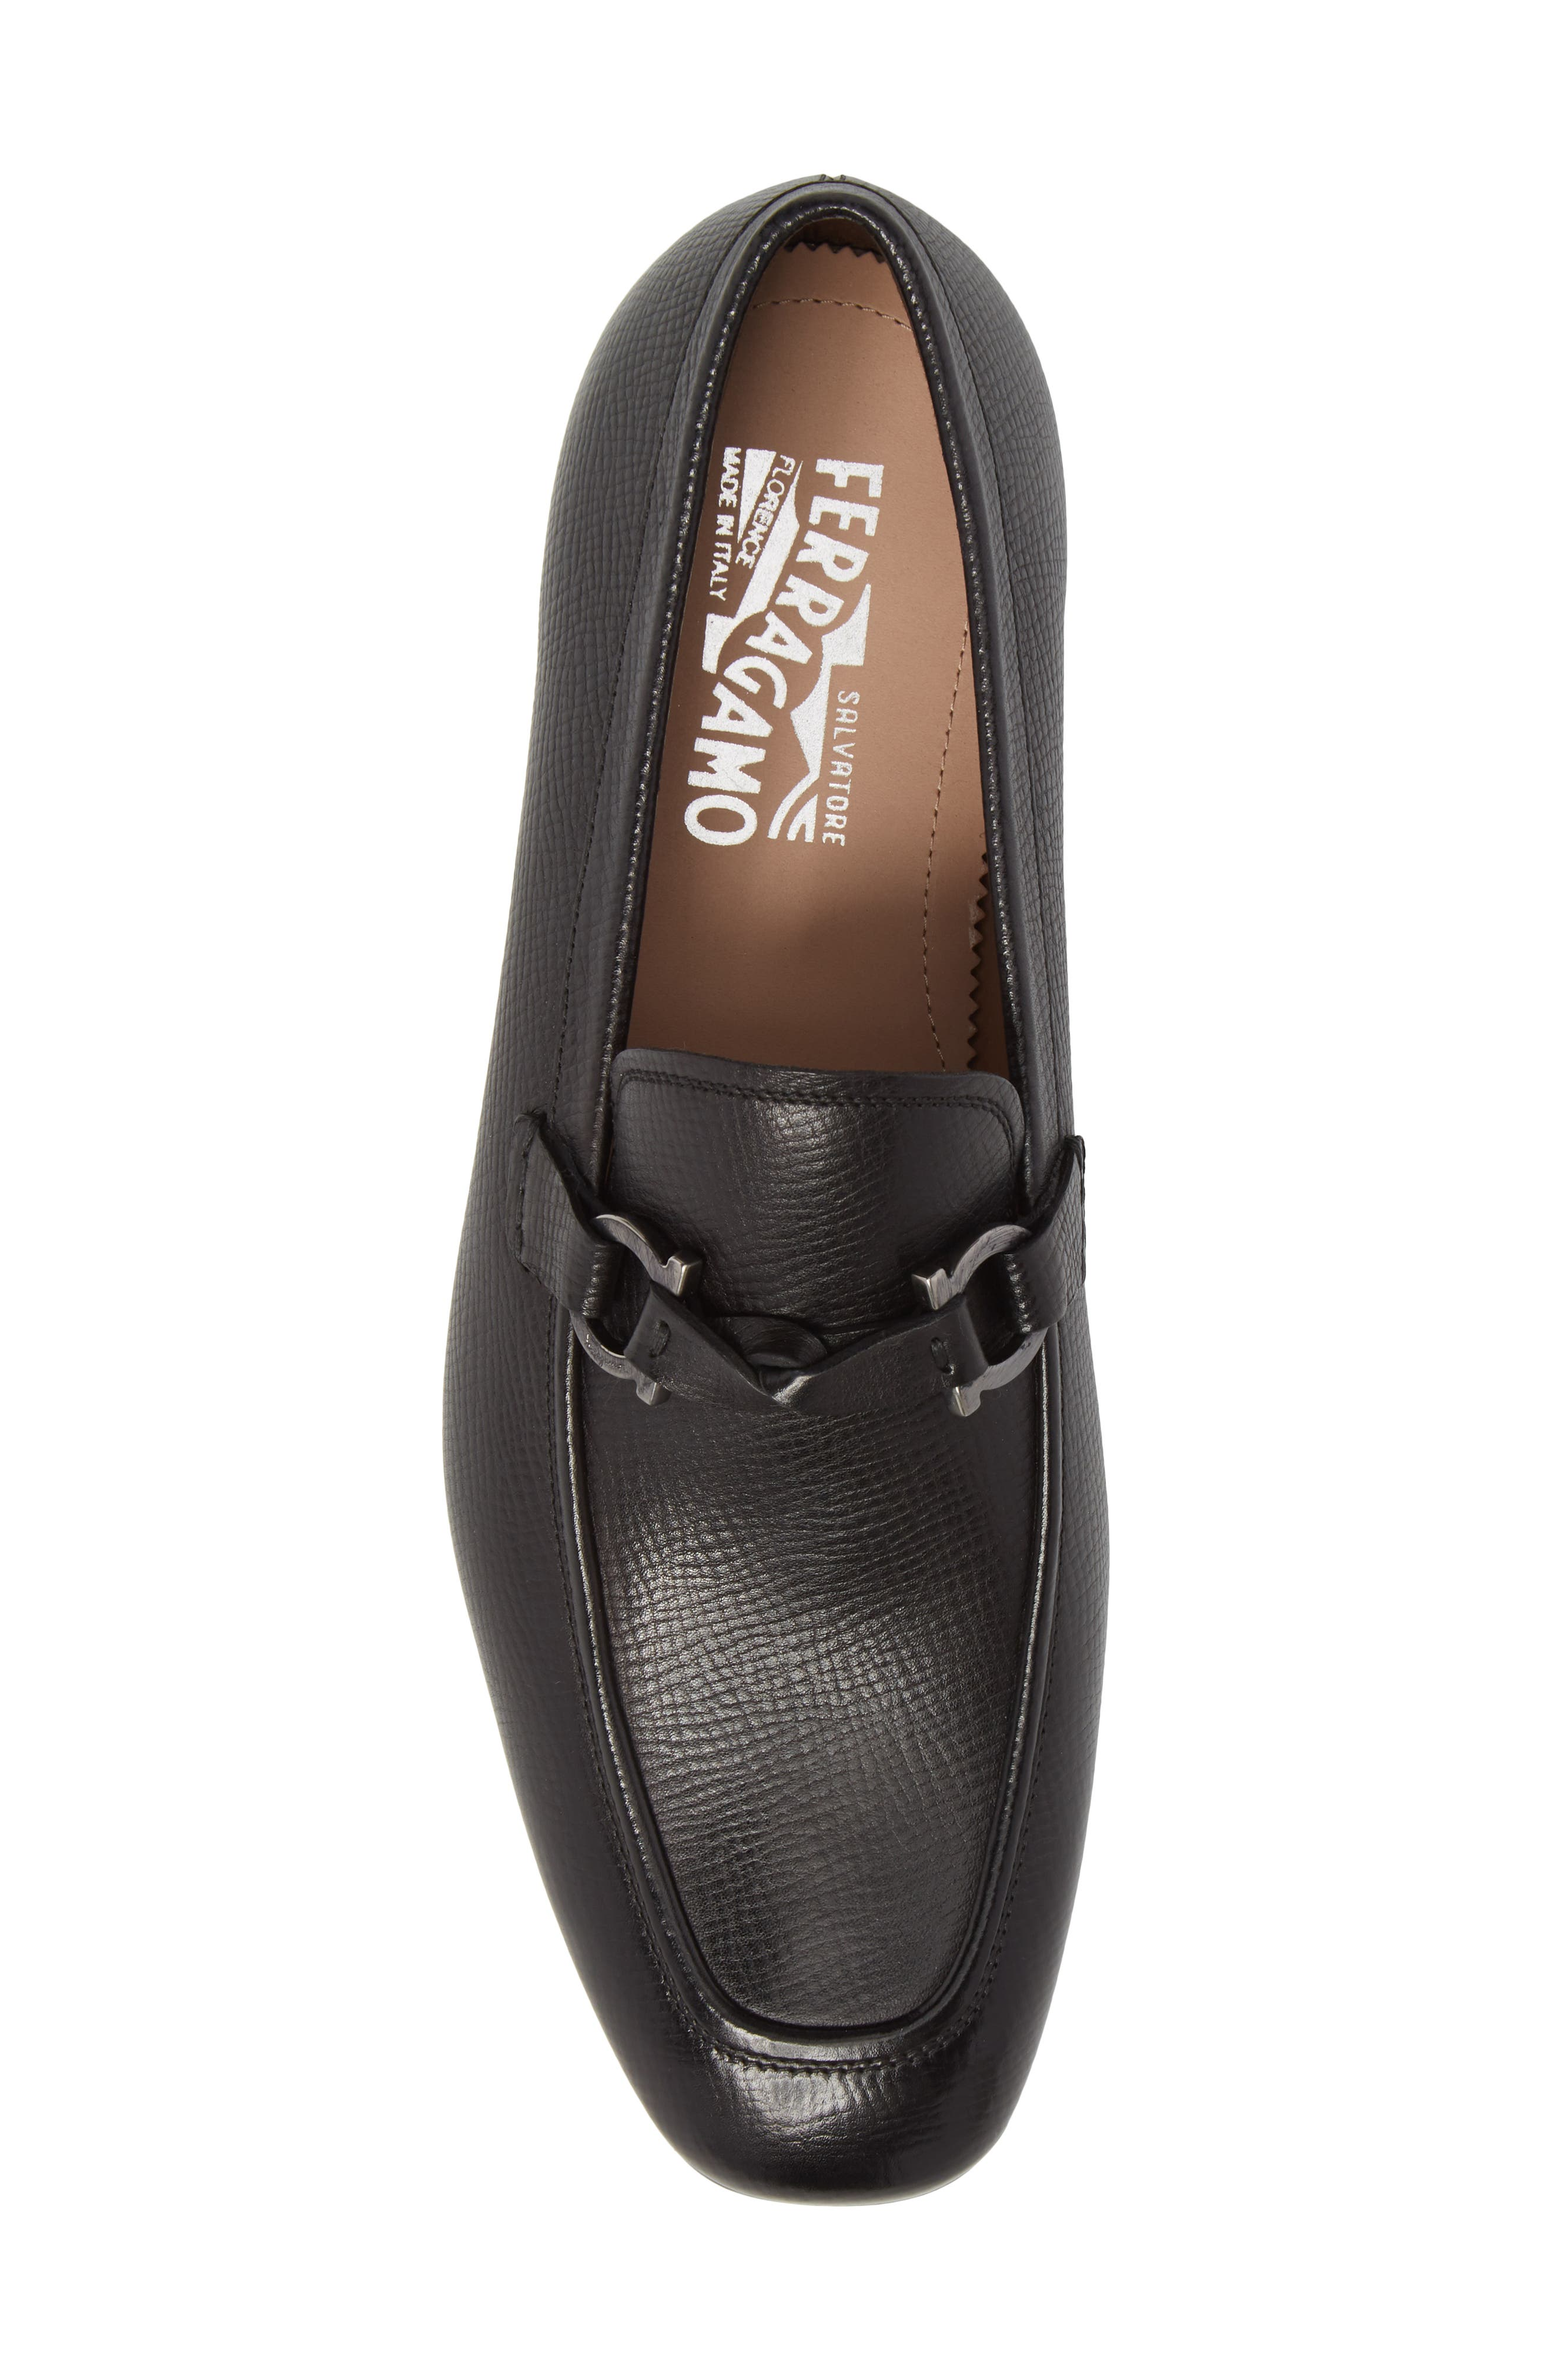 Barry Looped Bit Loafer,                             Alternate thumbnail 5, color,                             NERO LEATHER